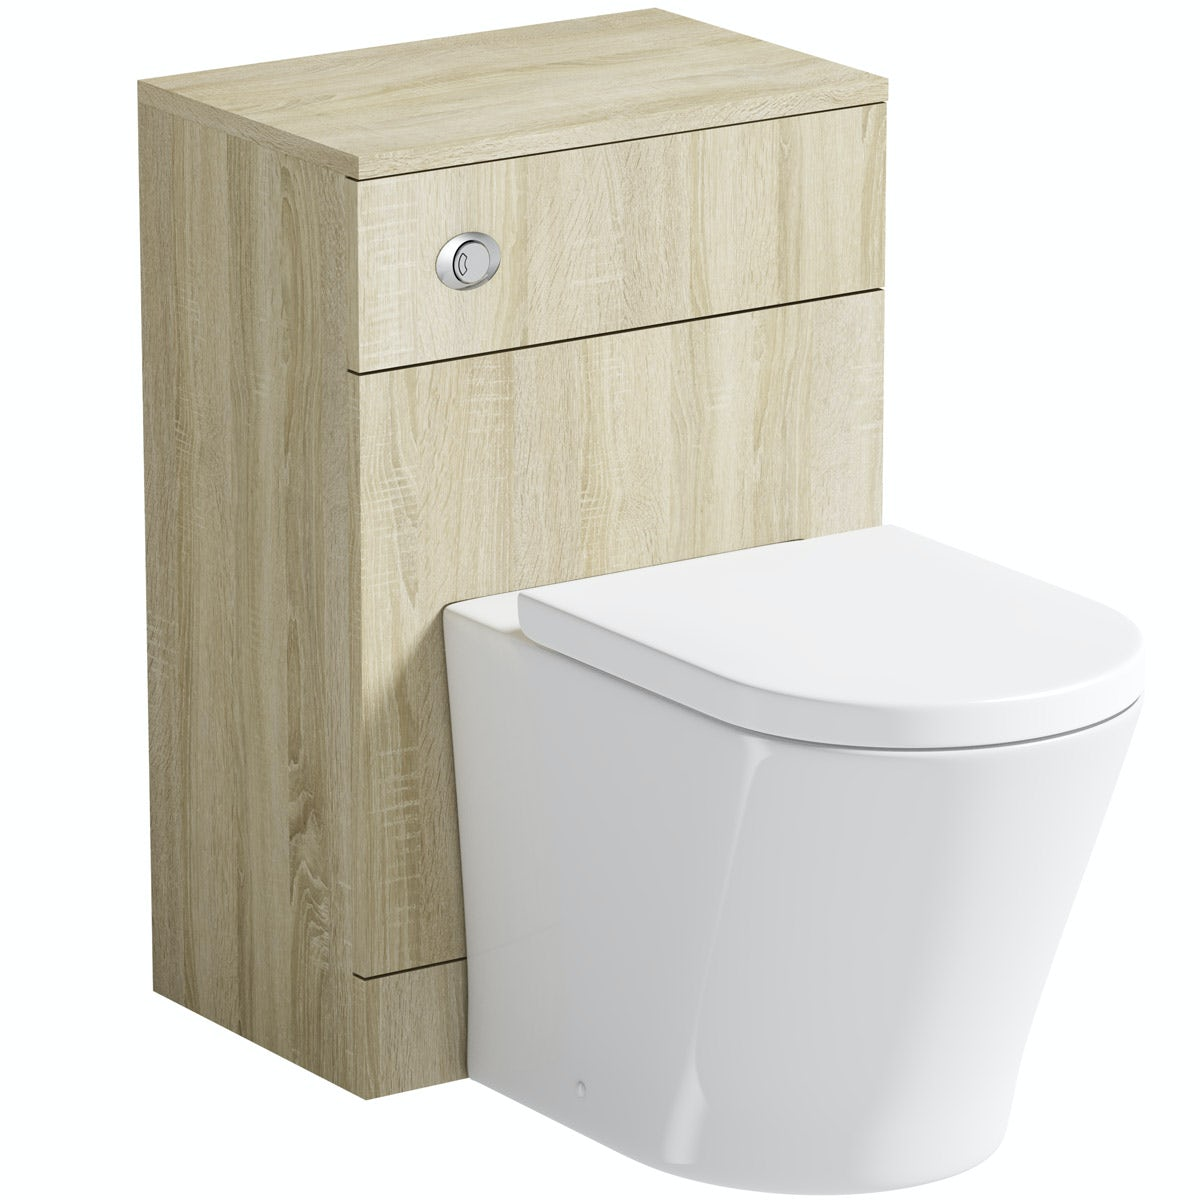 Orchard Eden oak back to wall unit with contemporary toilet and seat